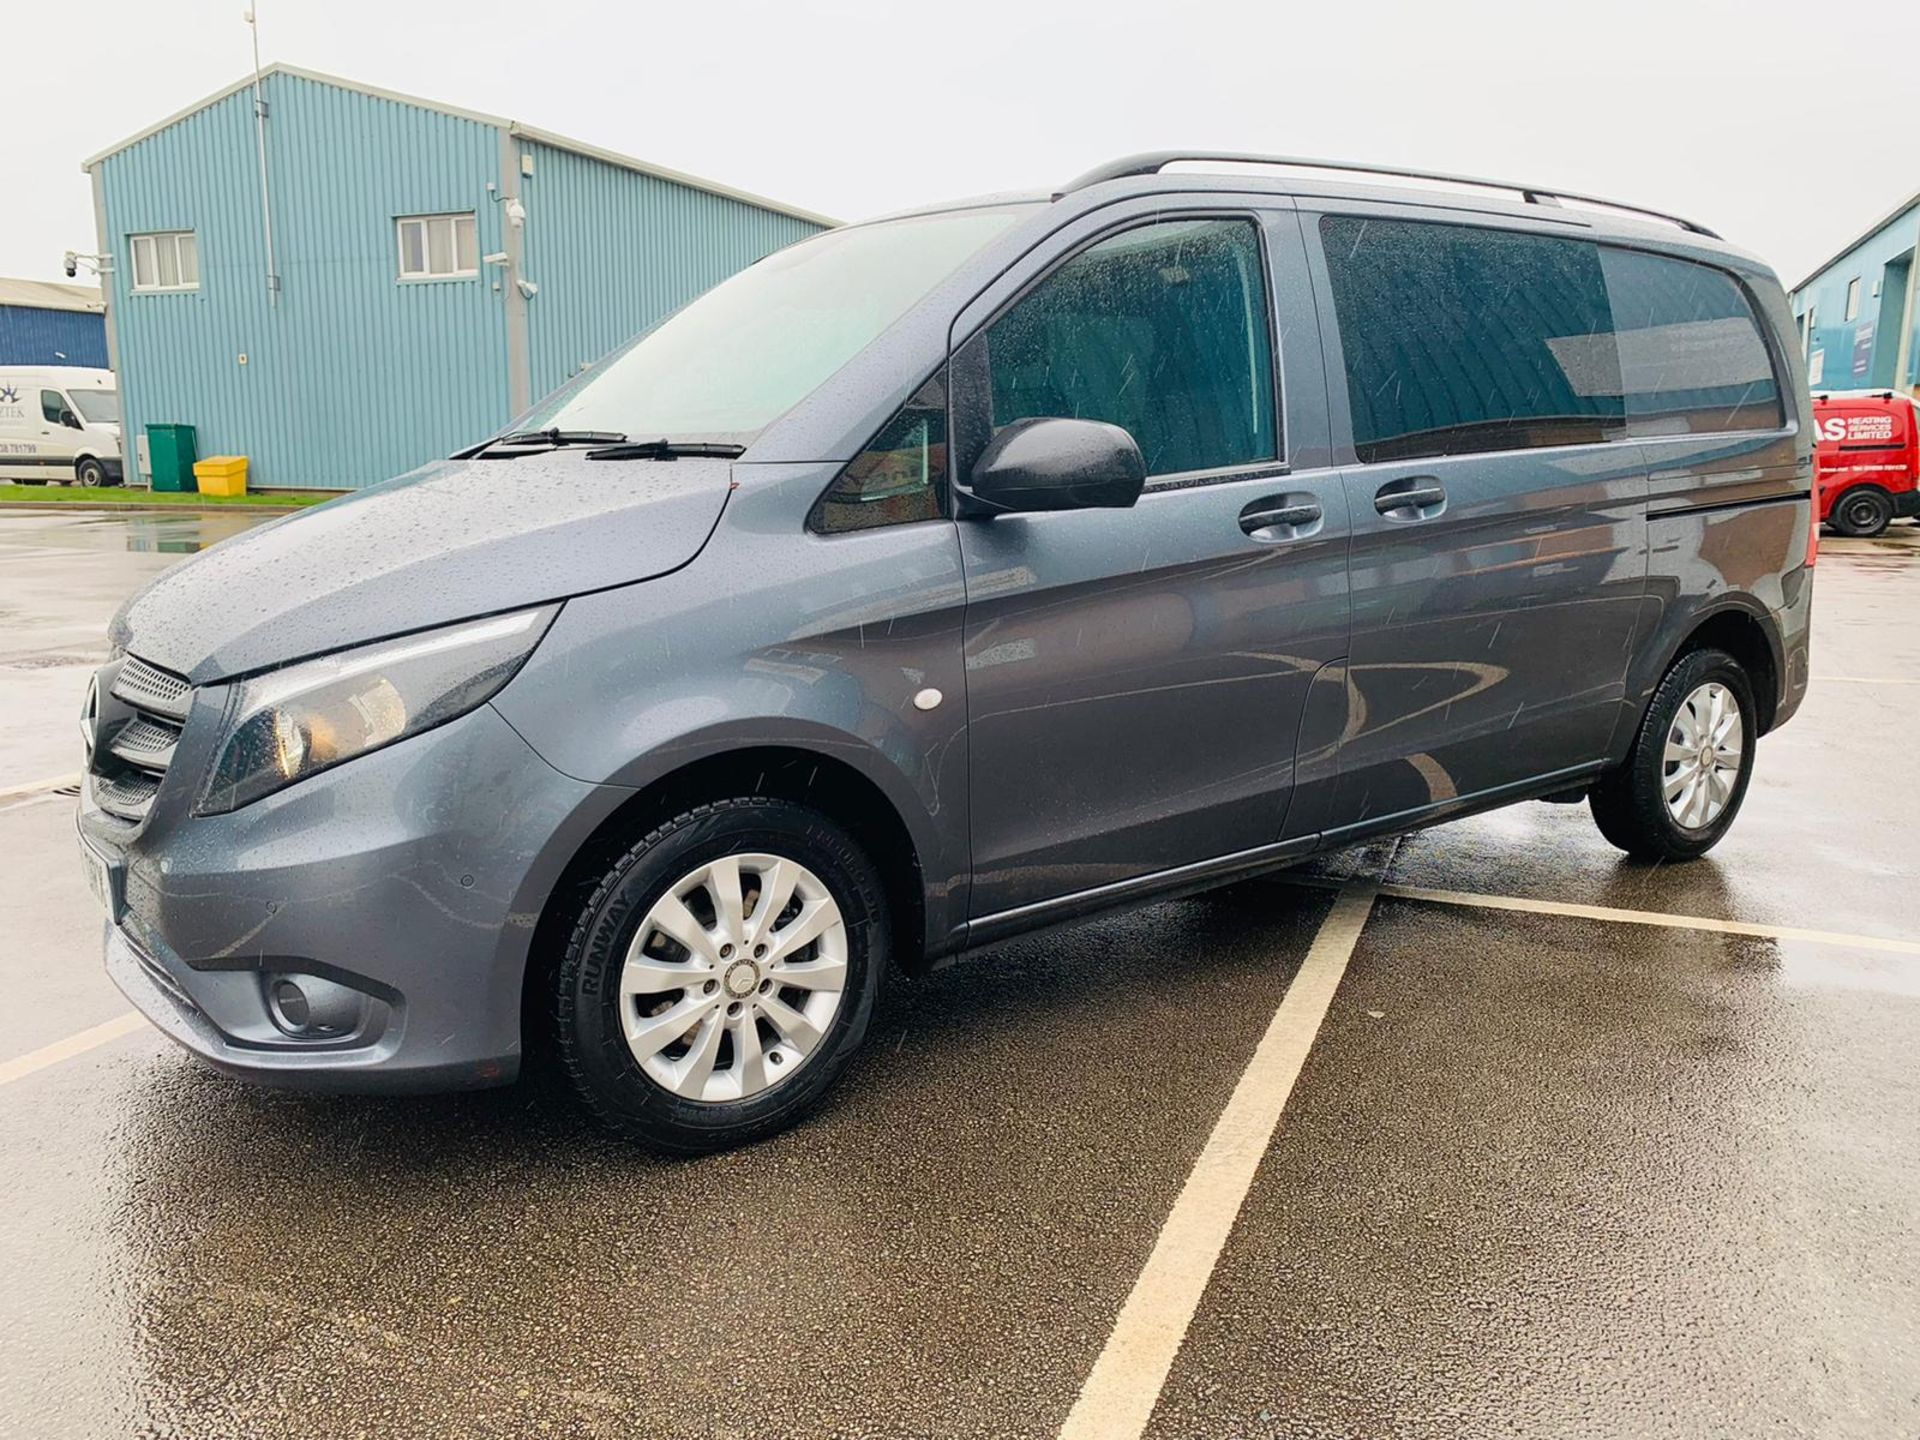 Mercedes Vito 114 Bluetec Dualiner/Crew Van - Auto - Air Con - 2018 Model- 1 Owner From New - Image 2 of 30